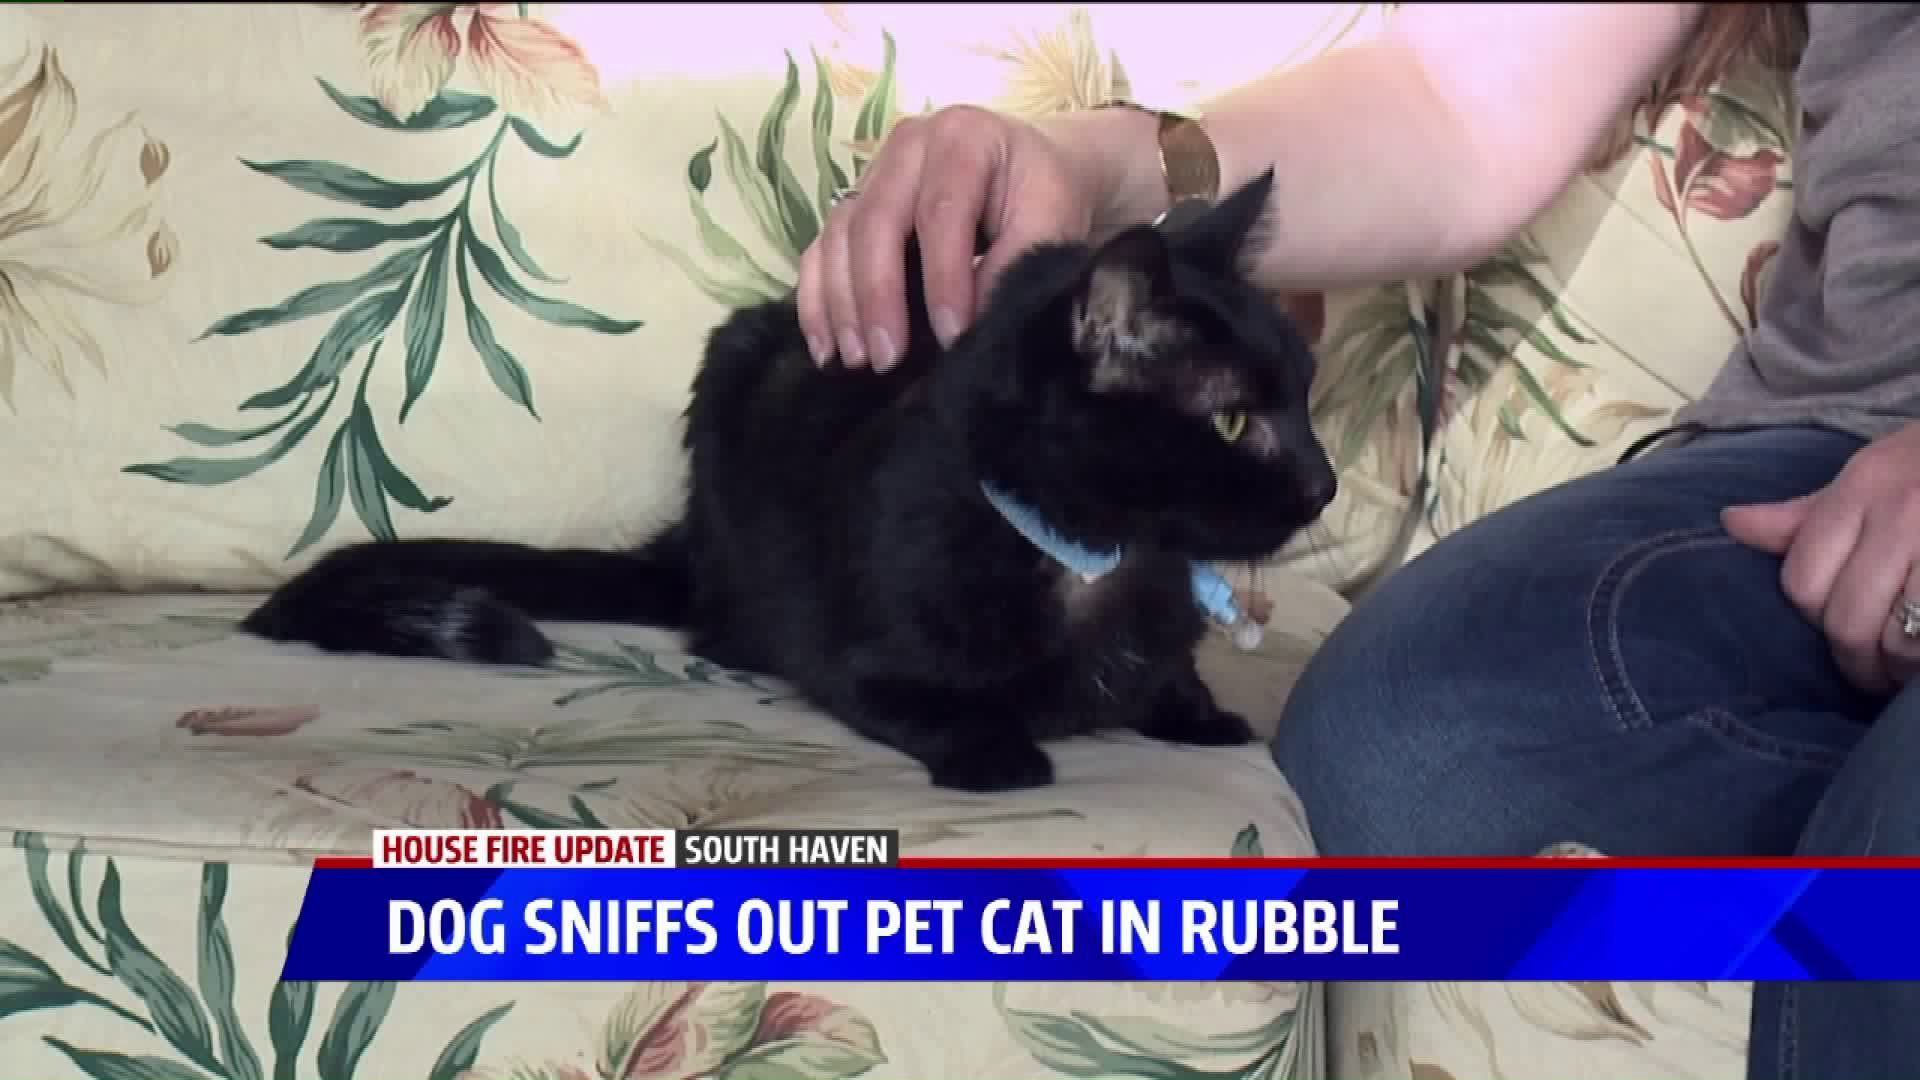 Family Dog Finds Missing Cat Alive Hiding In Floor Months After House Fire Cats Dogs Family Dogs